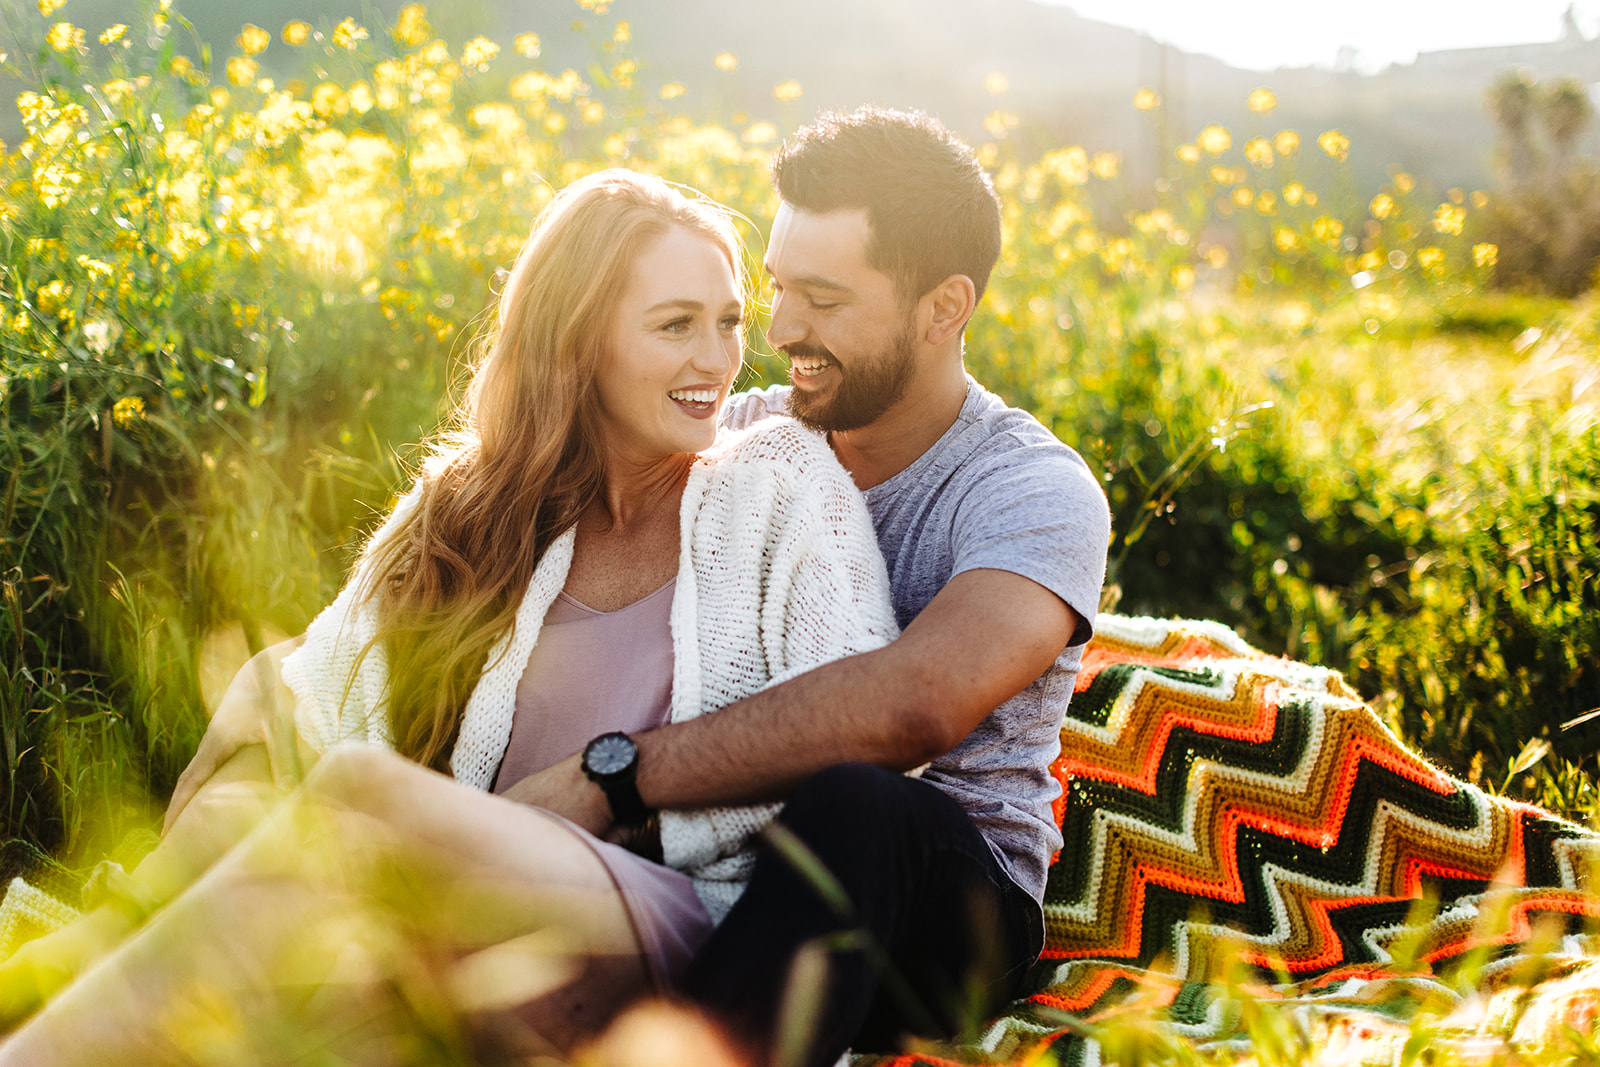 Katie-Yovin_Richard_Superbloom-Engagement-Photos_Clarisse-Rae_Southern-California-Wedding-Photographer-Orange-County-Engagement-Photos-13